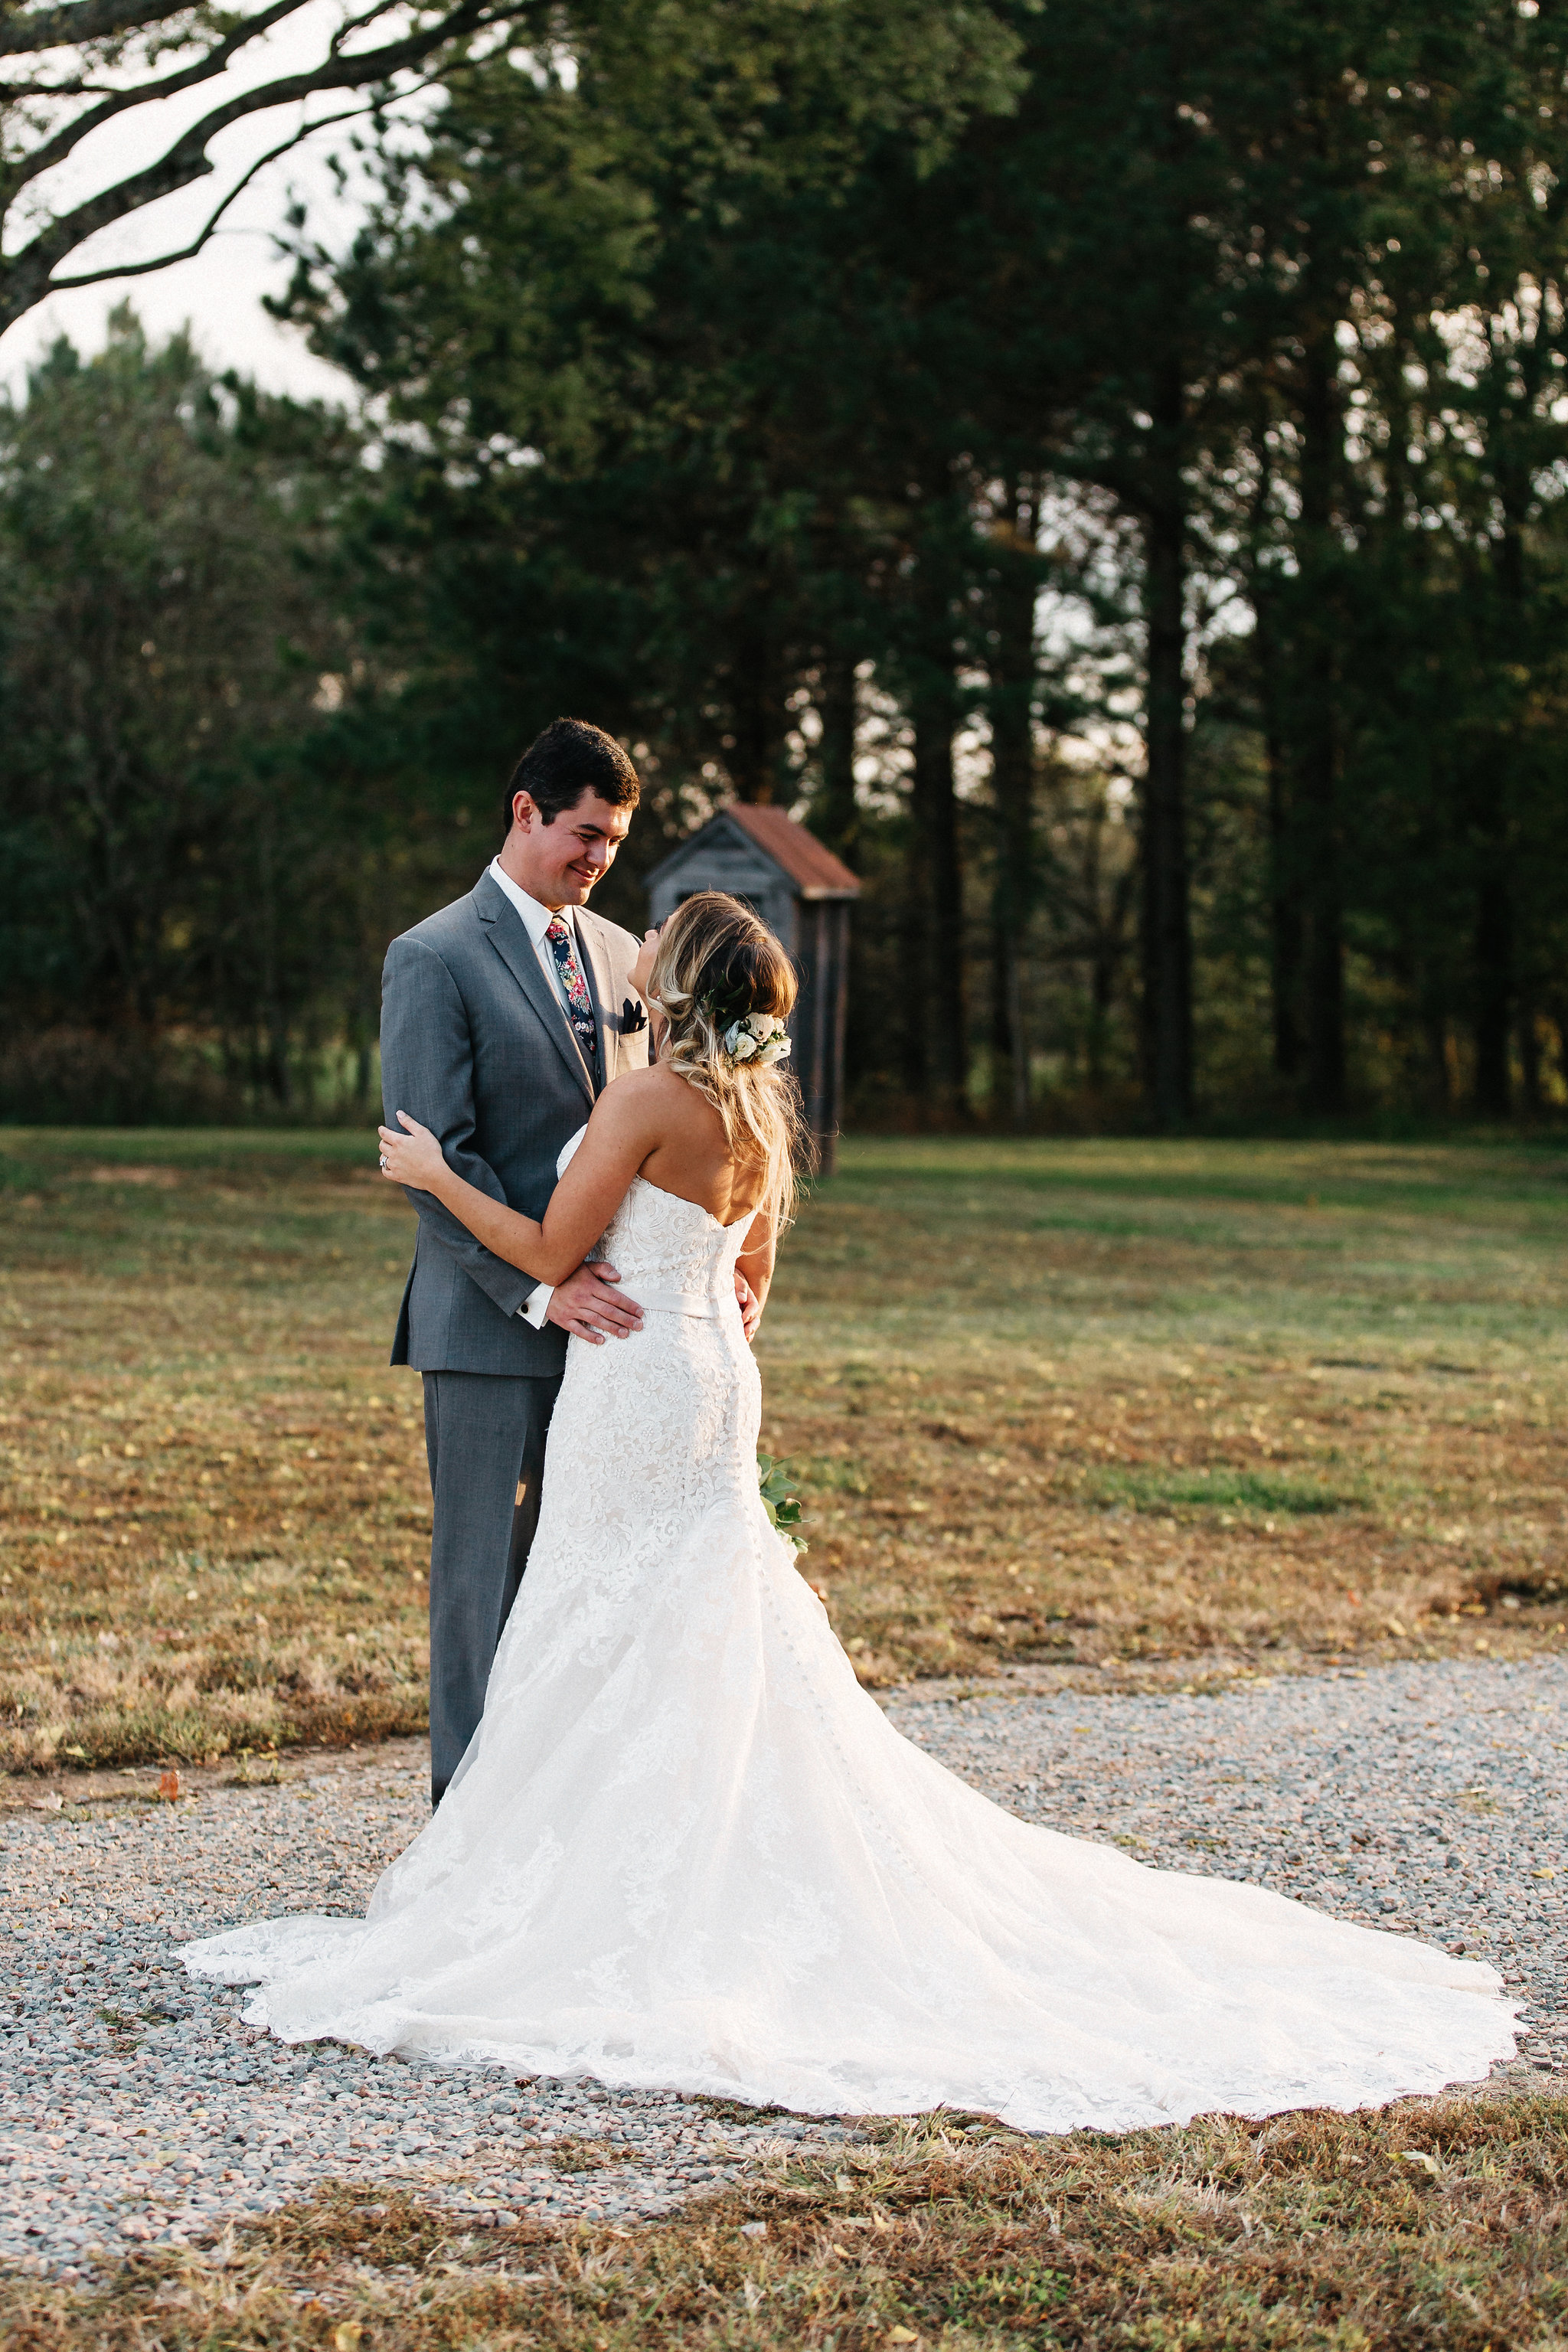 Ashley&NathanMarried2017-11-10at19.26.49PM68.jpg